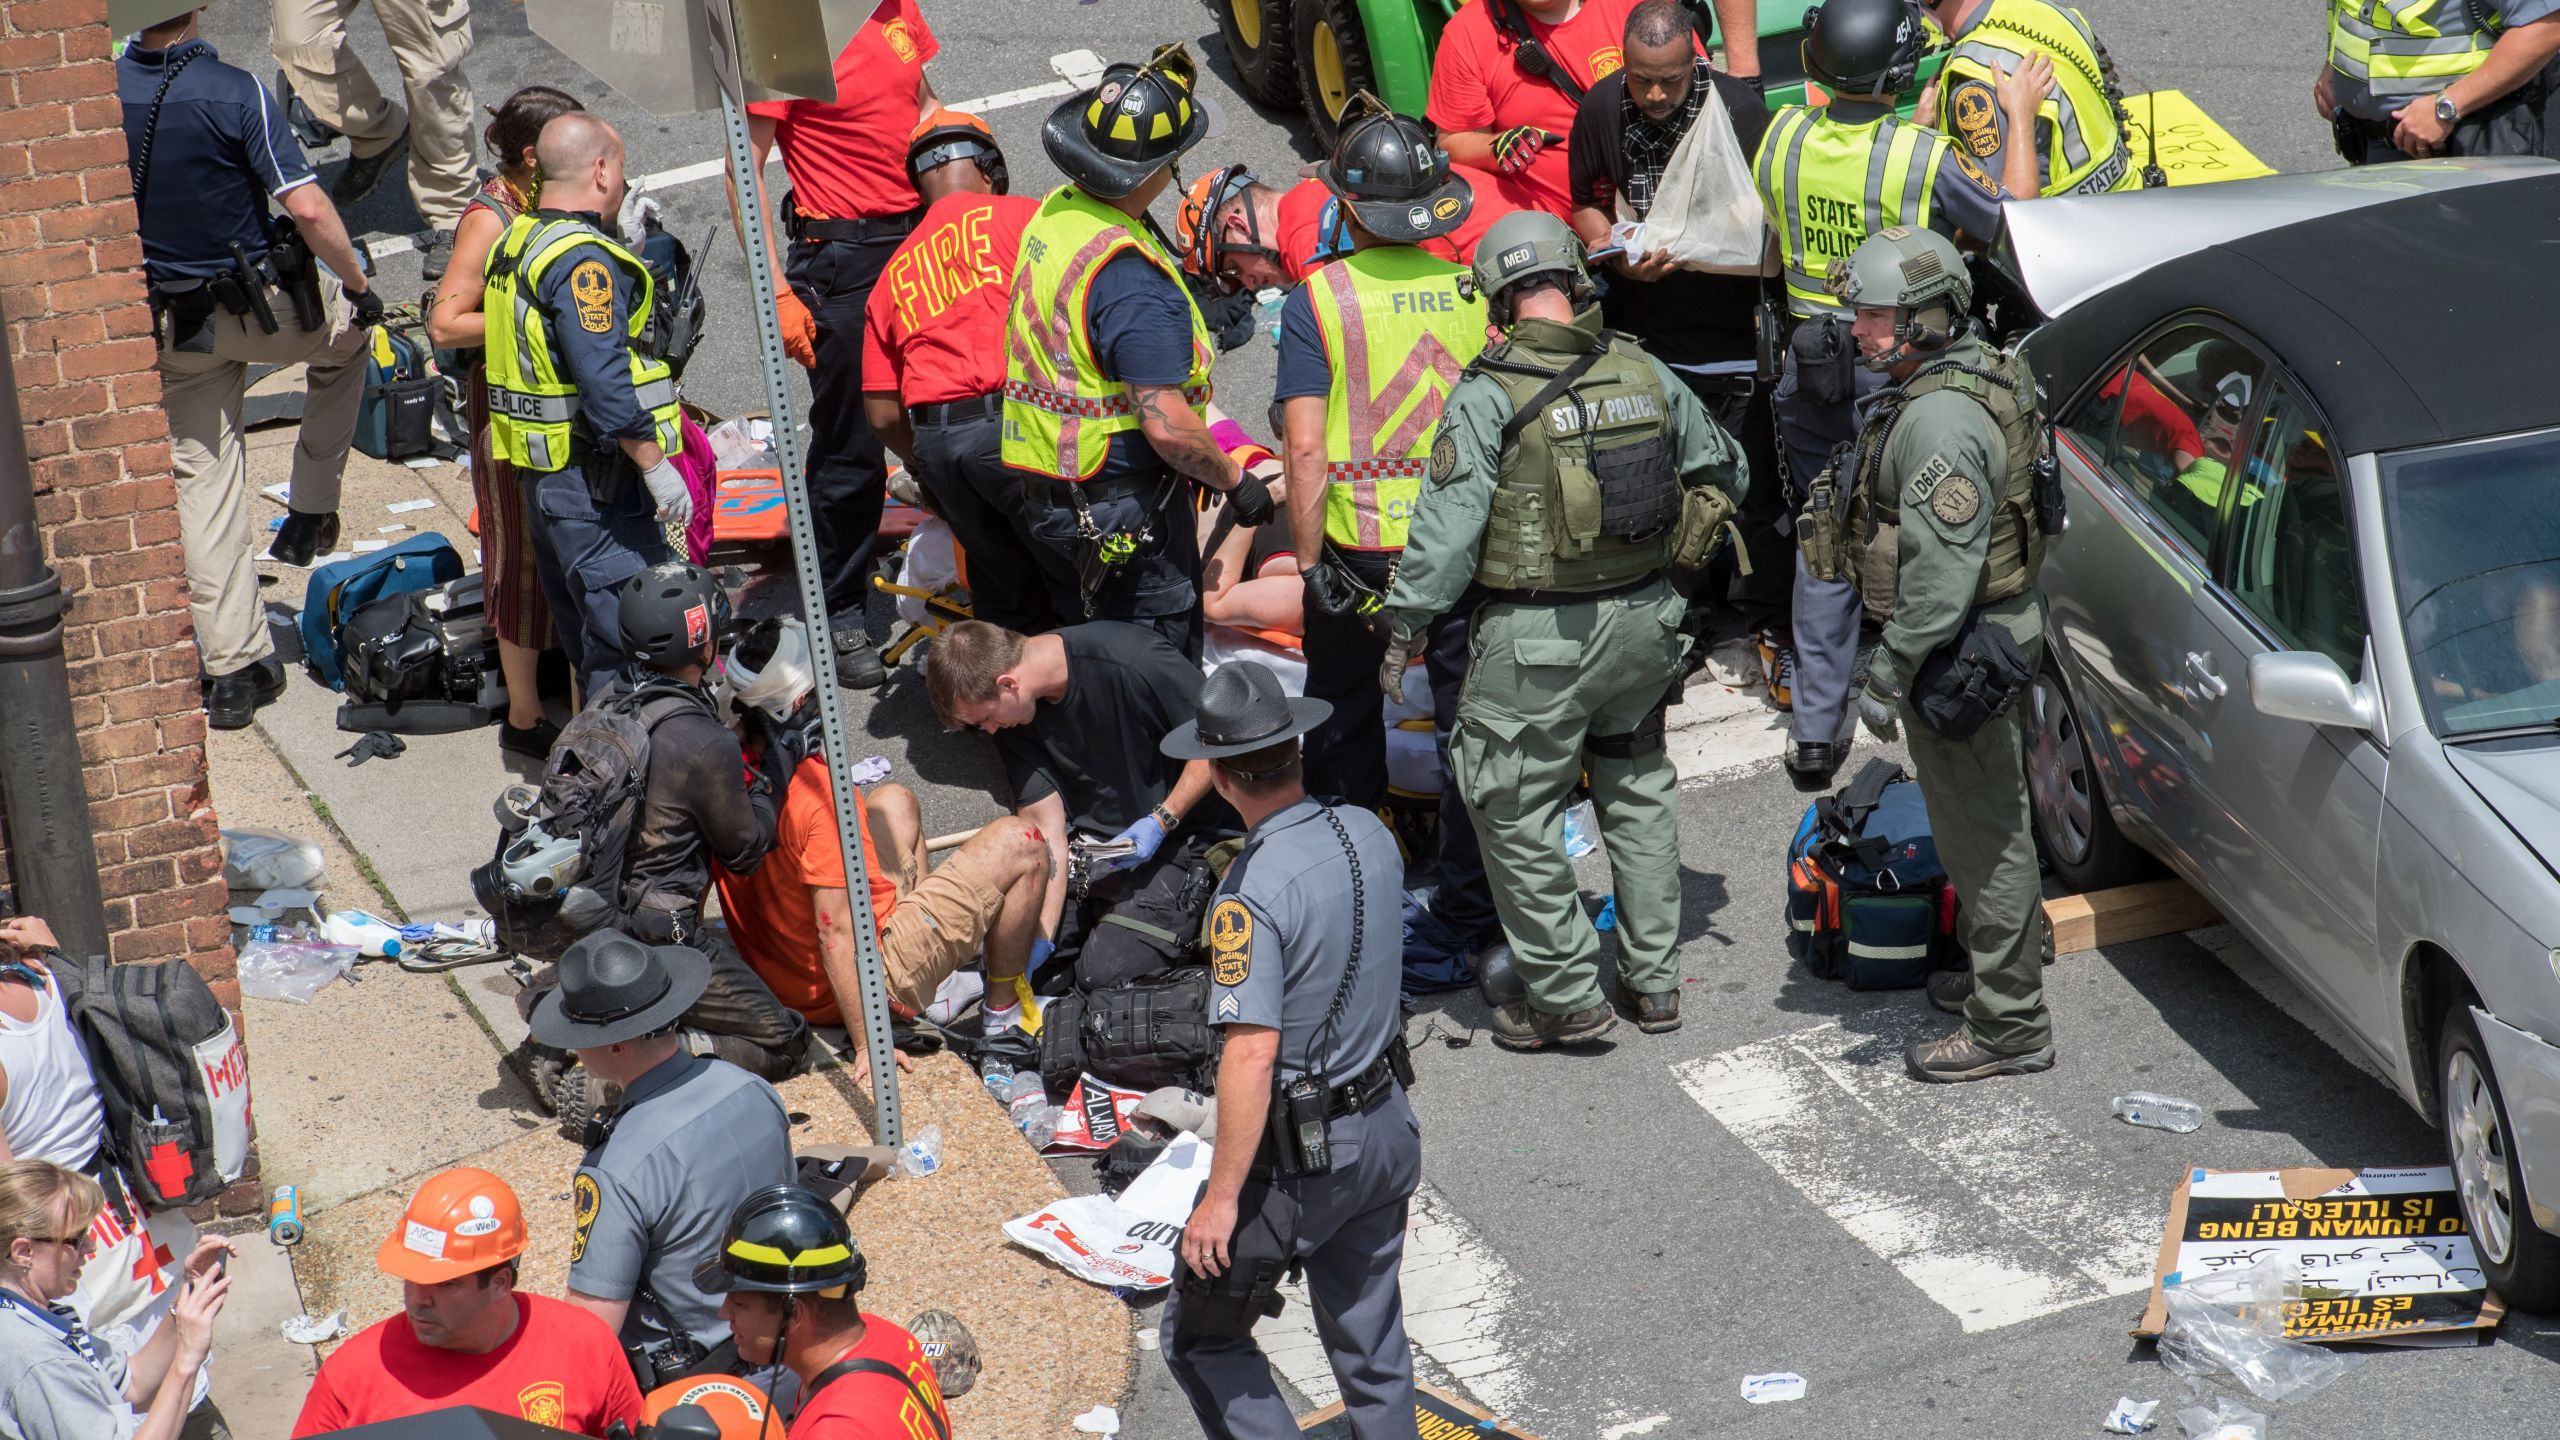 People receive first-aid after a car ran into a crowd of protesters in Charlottesville, Virginia, on Aug. 12, 2017. (Credit: Paul J. Richards / AFP / Getty Images)